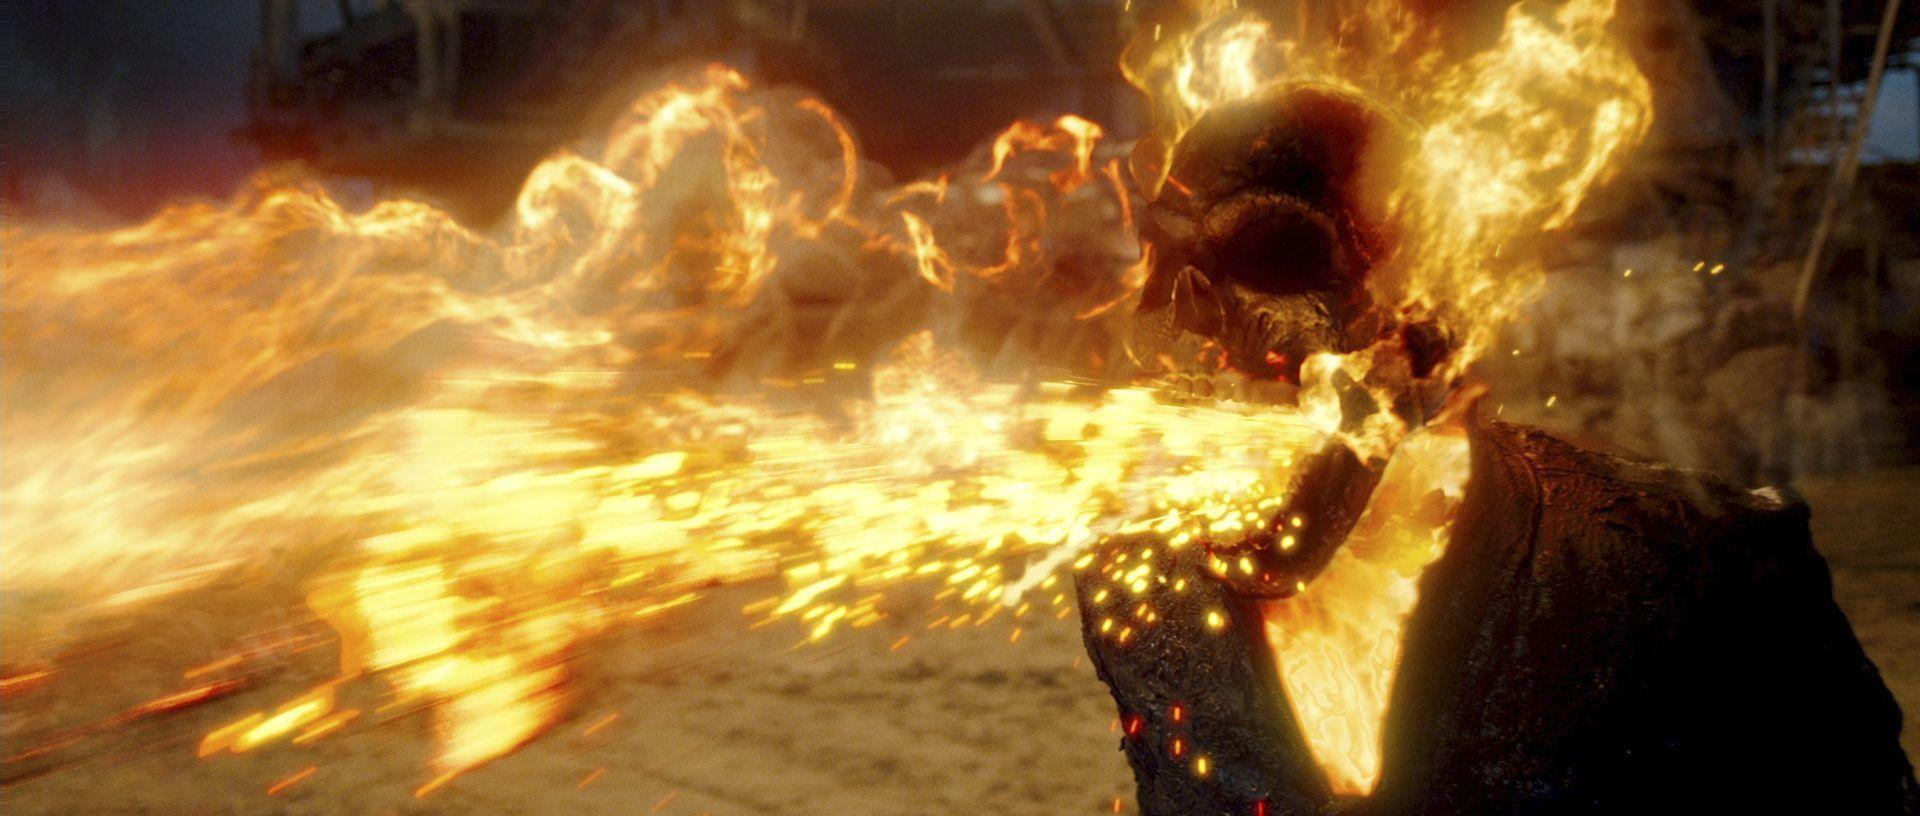 Ghost rider heti smut pictures